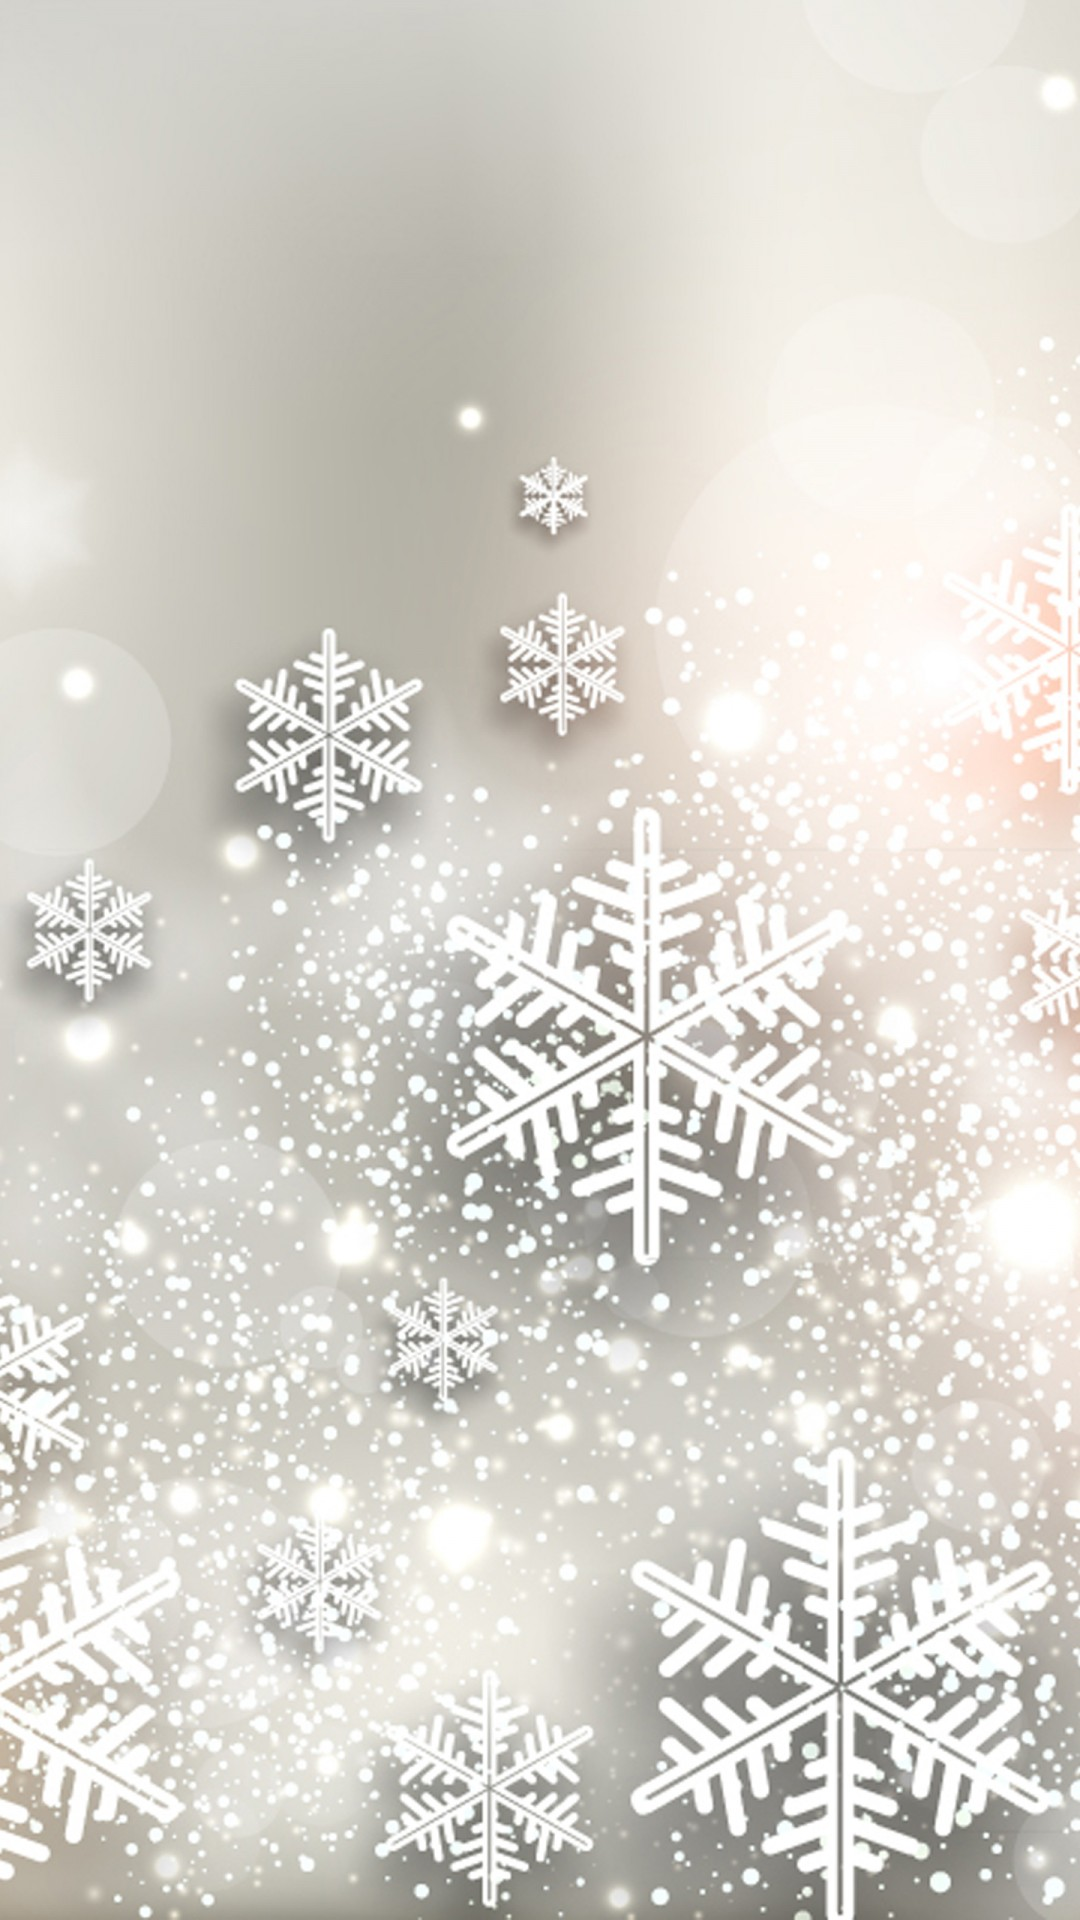 Shiny Snowflakes iPhone 6 / 6 Plus and iPhone 5/4 Wallpapers